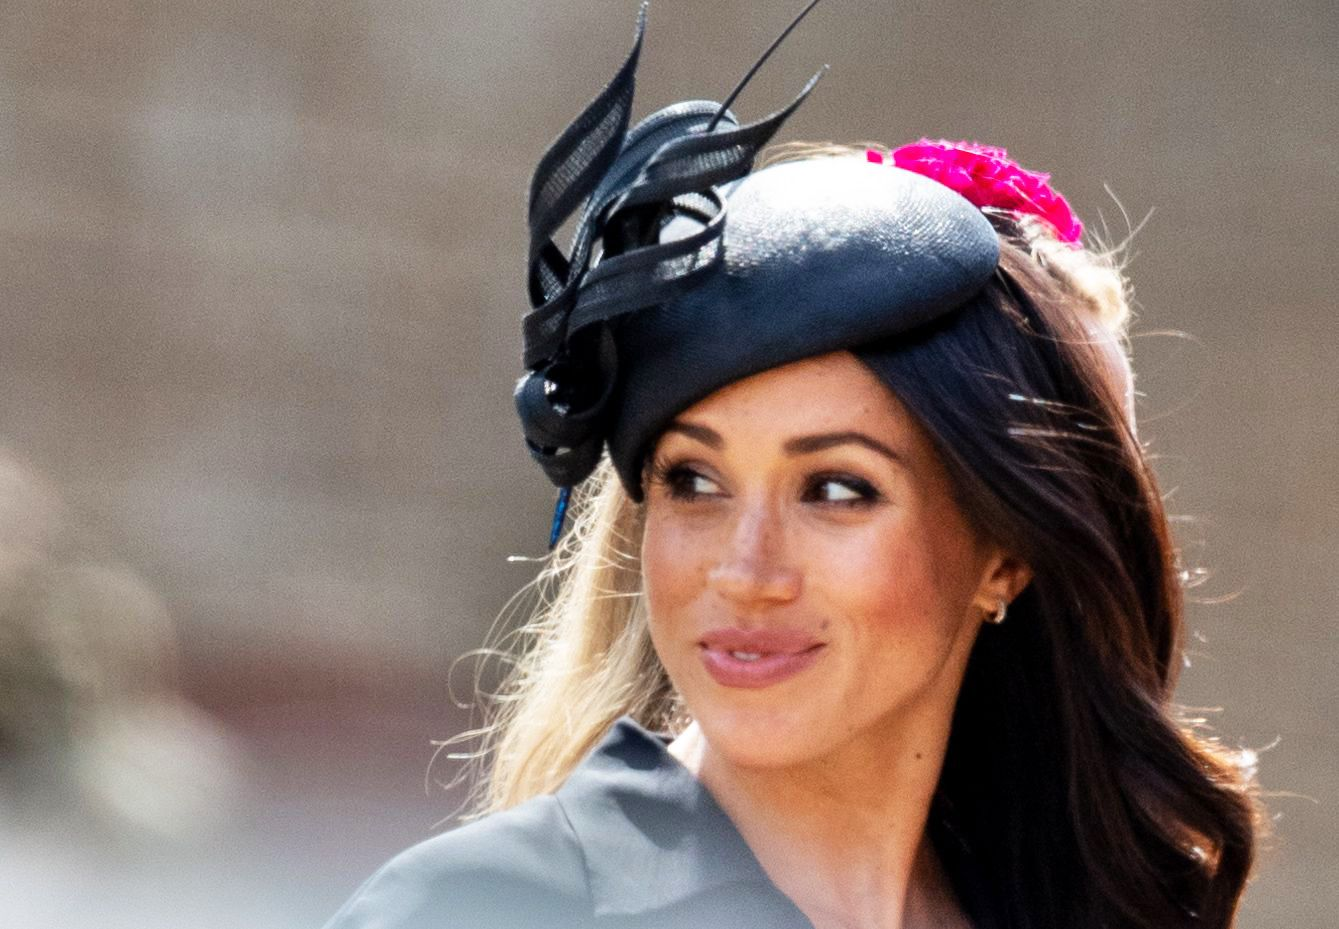 Meghan Markle Threw A Party To Give Her Friends Clothes When She